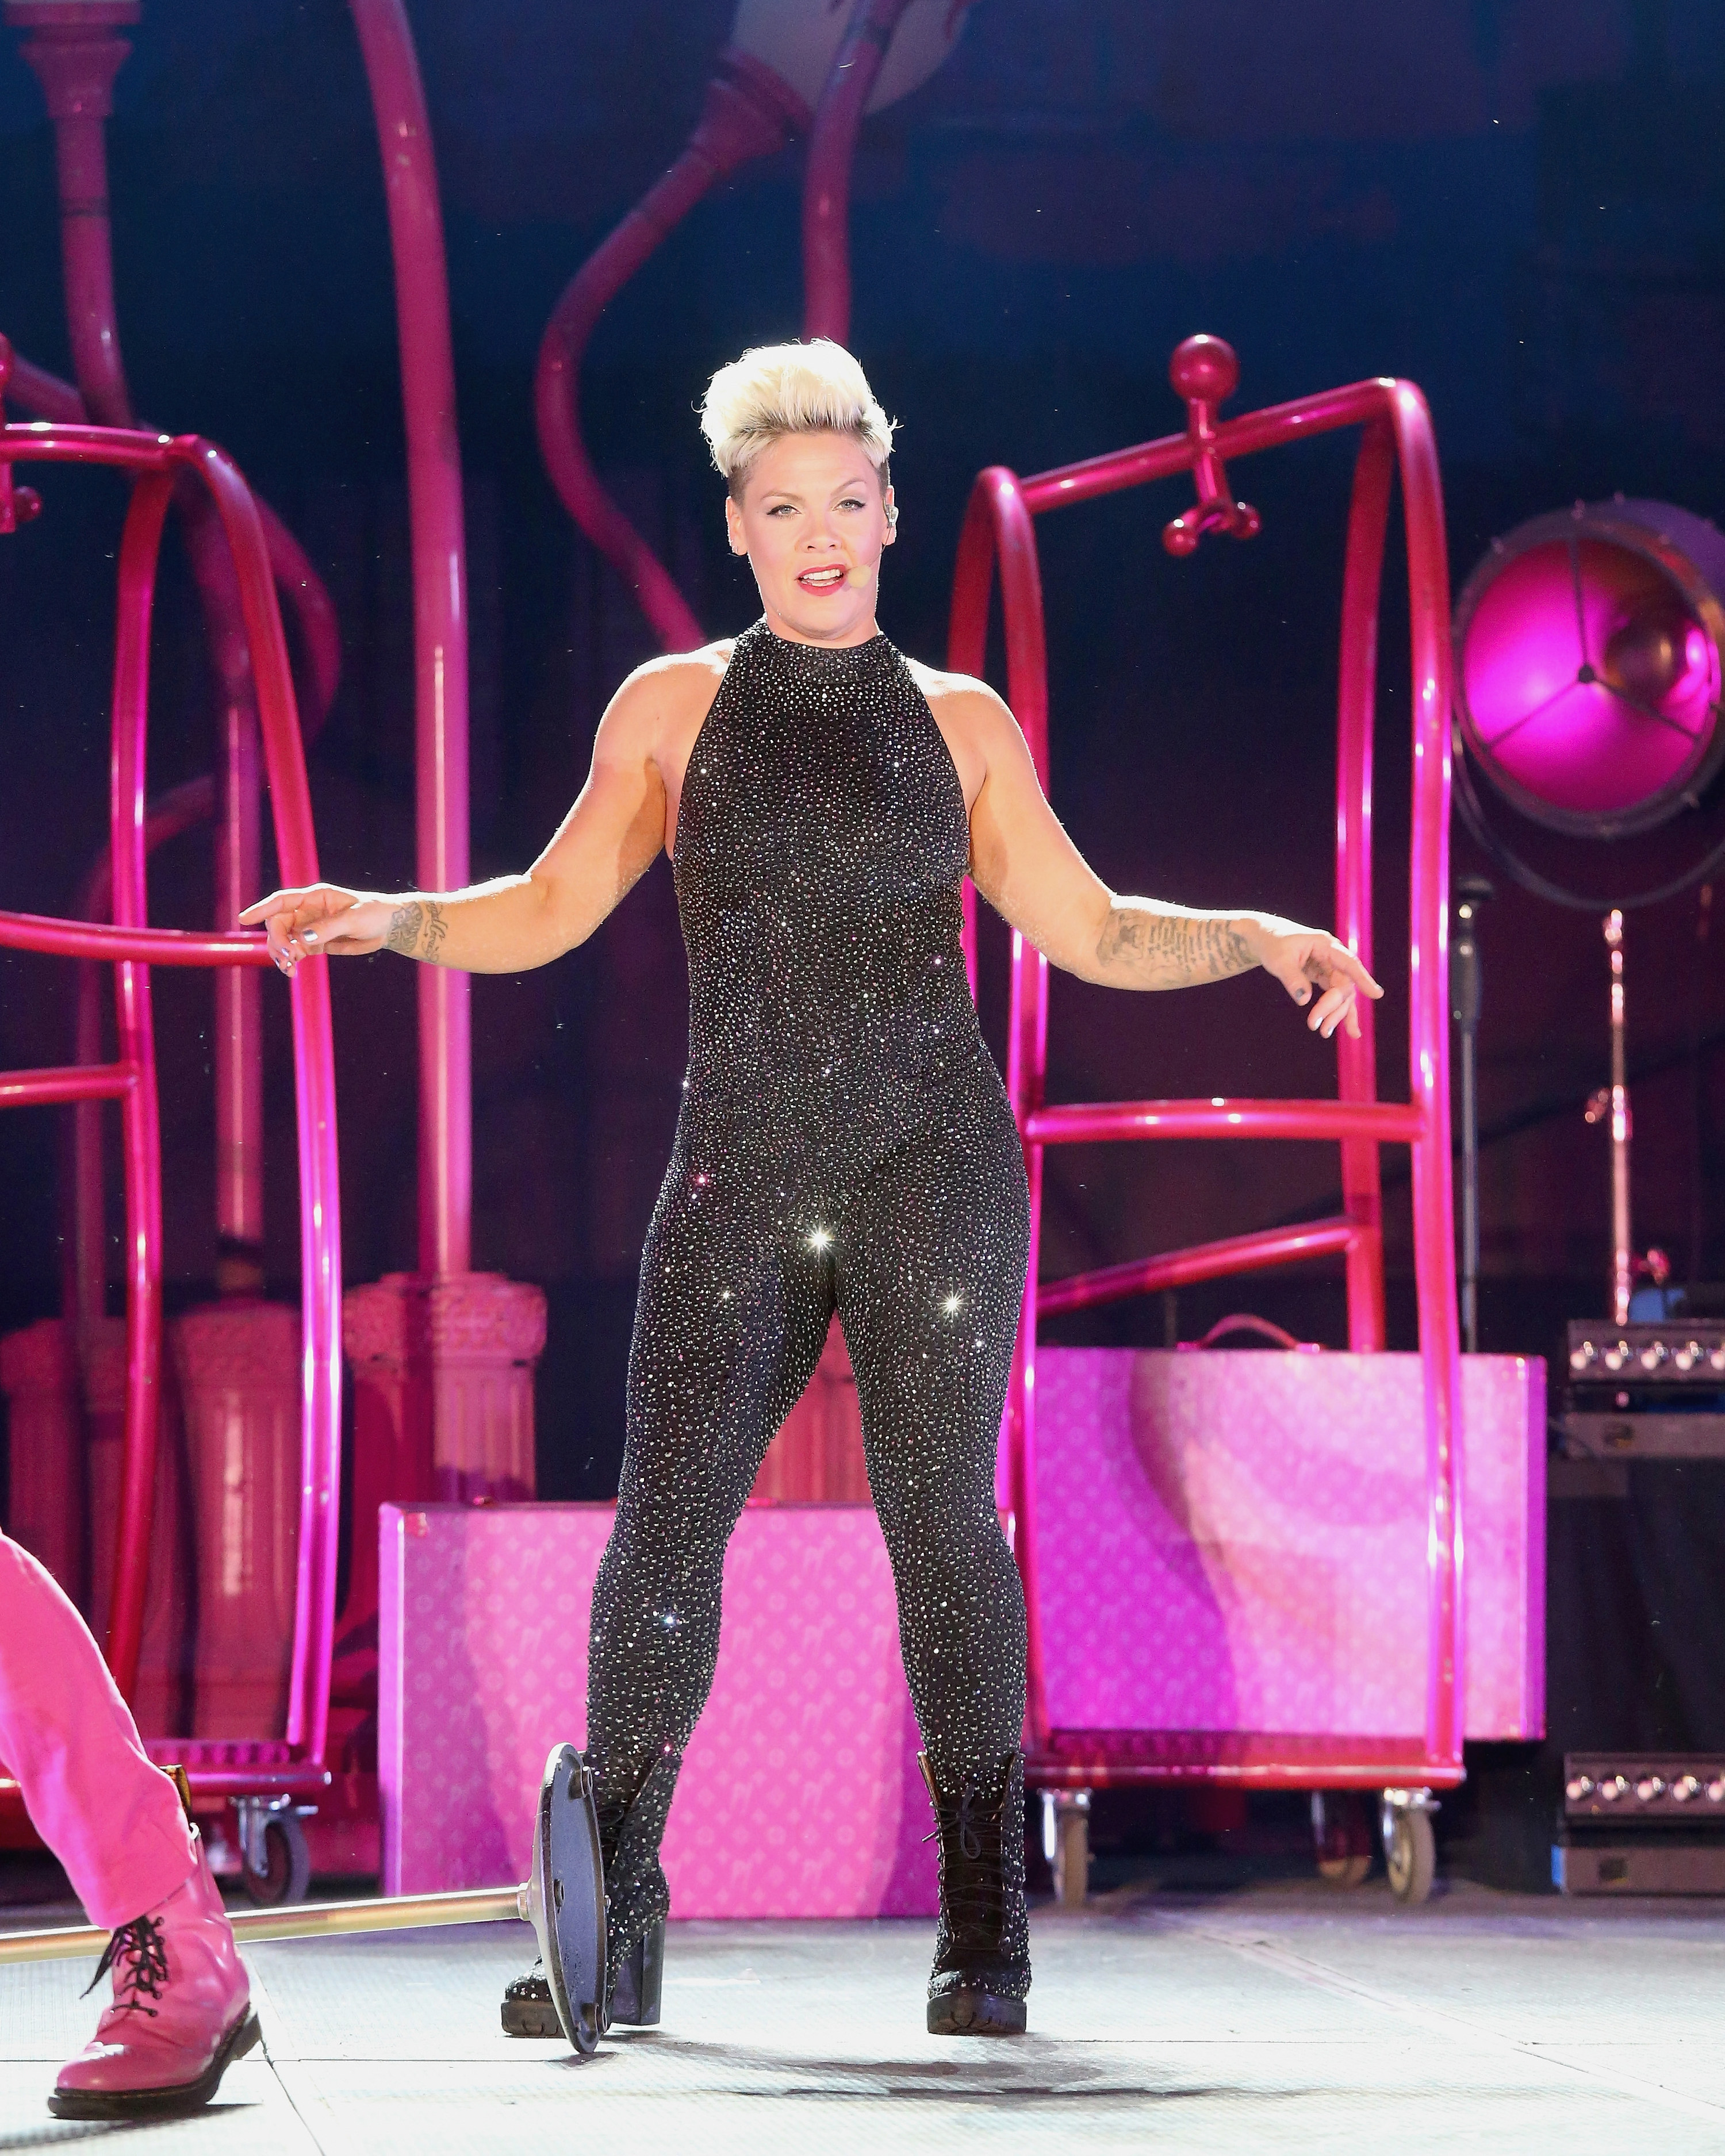 P!nk performs on stage in a sparkly one-piece